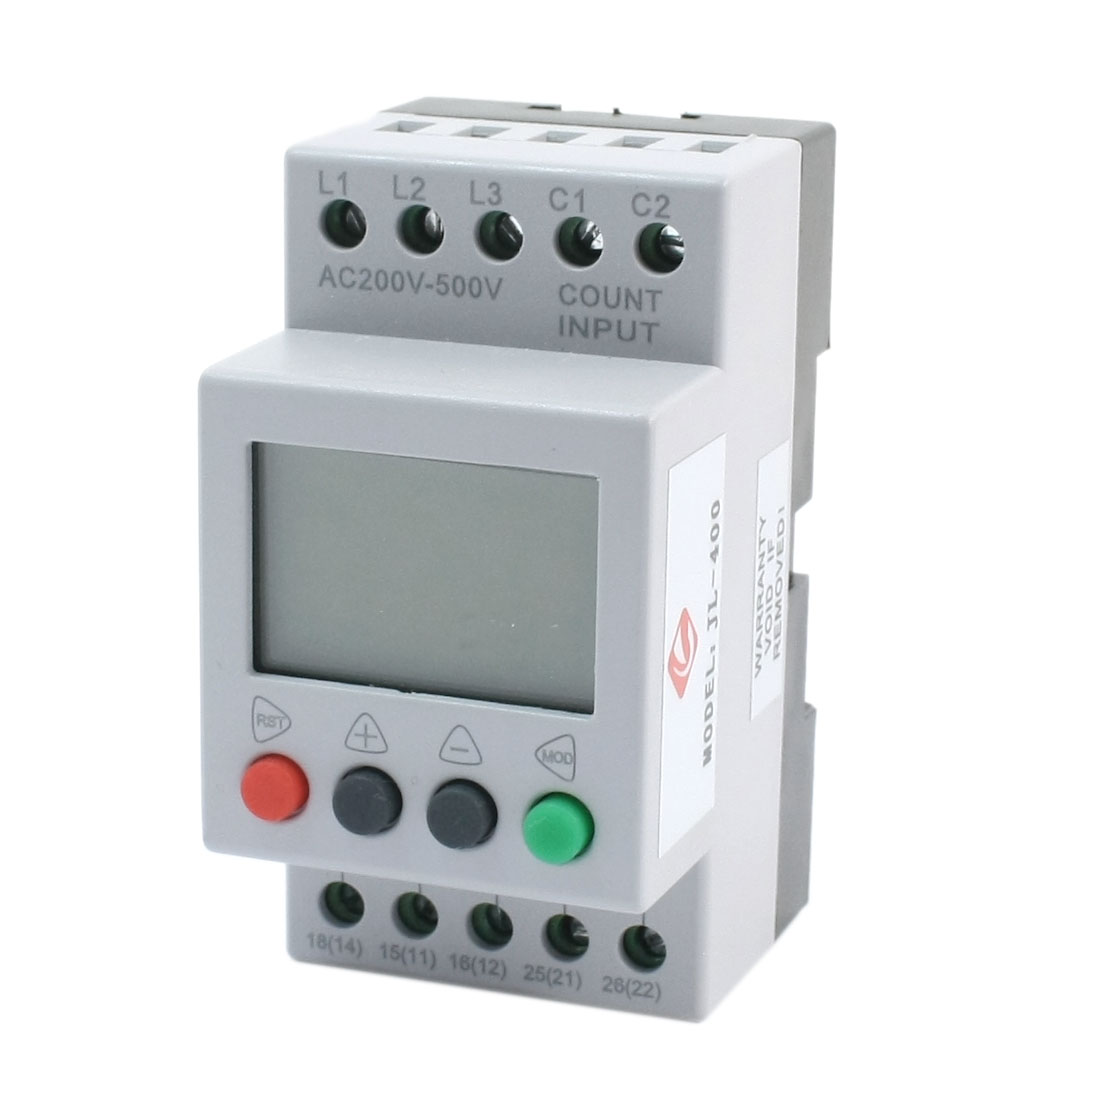 JL-400 Three-phase LCD Display Phase Failure Sequence Unbalance Over/Under Voltage Protective Relay